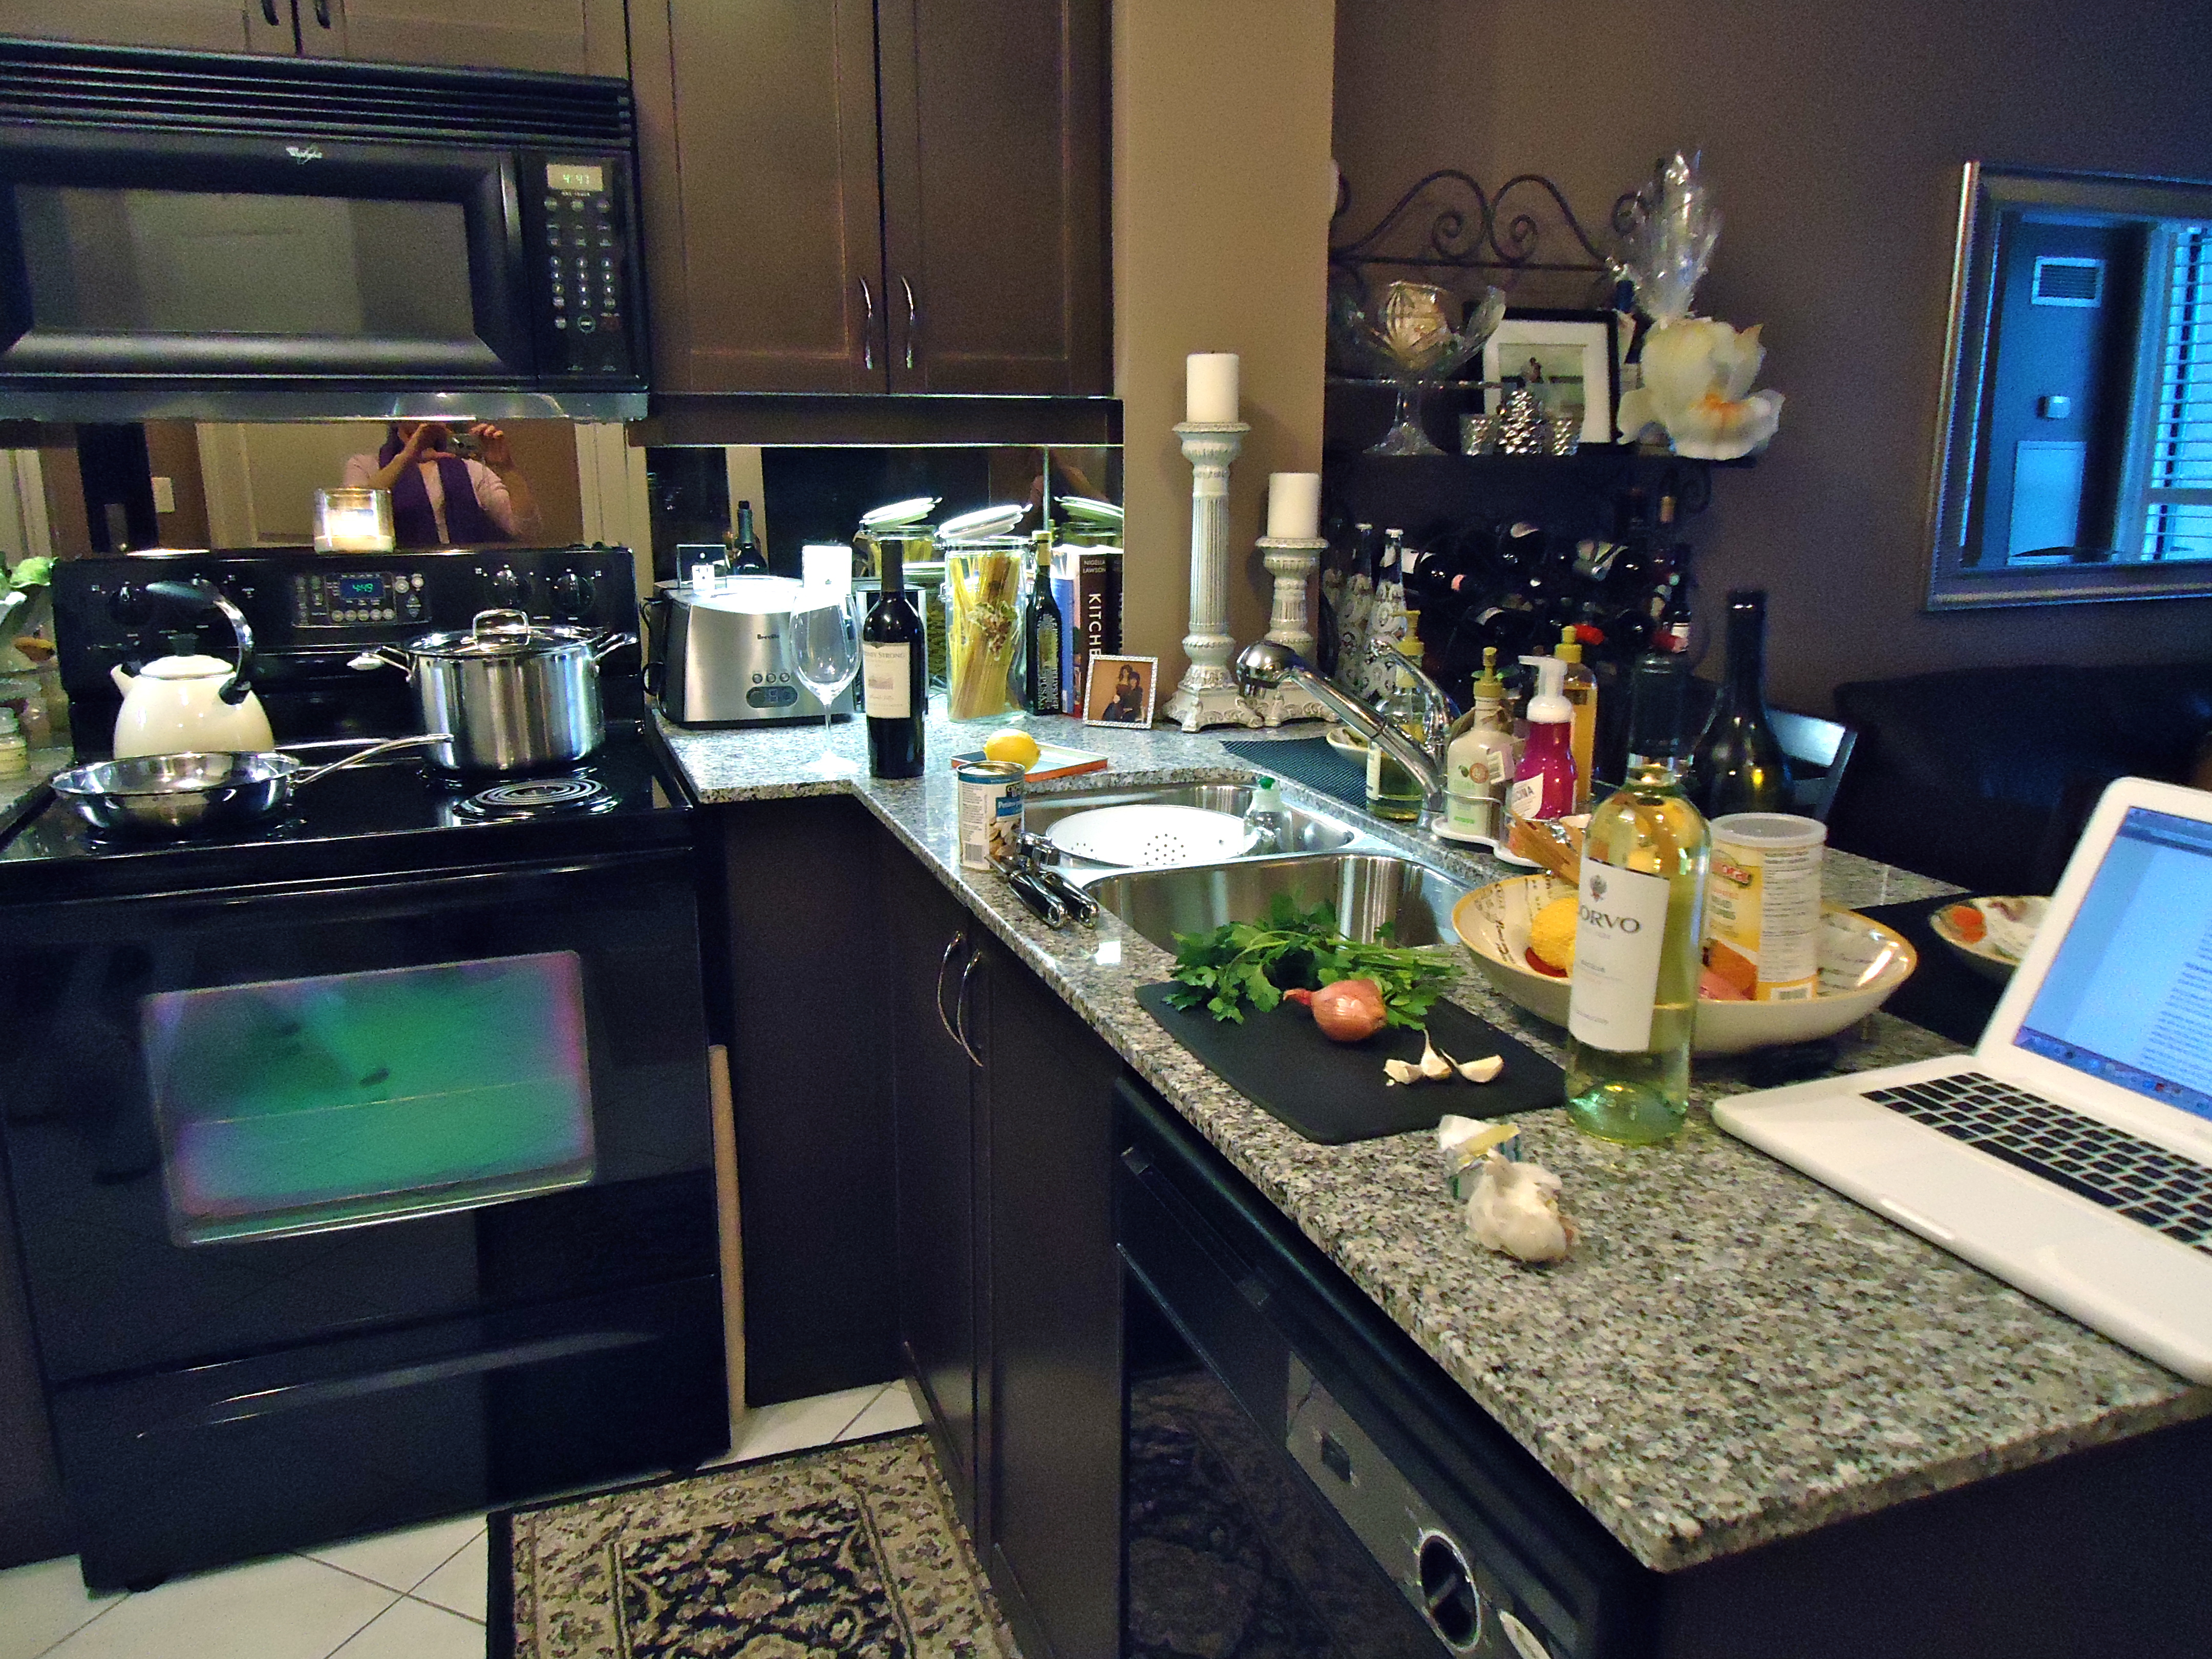 If I Could Build My Dream Kitchen, It Would Be Spacious U0026 Stunning U0026  Include A Fancy Wine Cooler, A Kitchen Island, Lots Of Hidden Storage  Space, ...